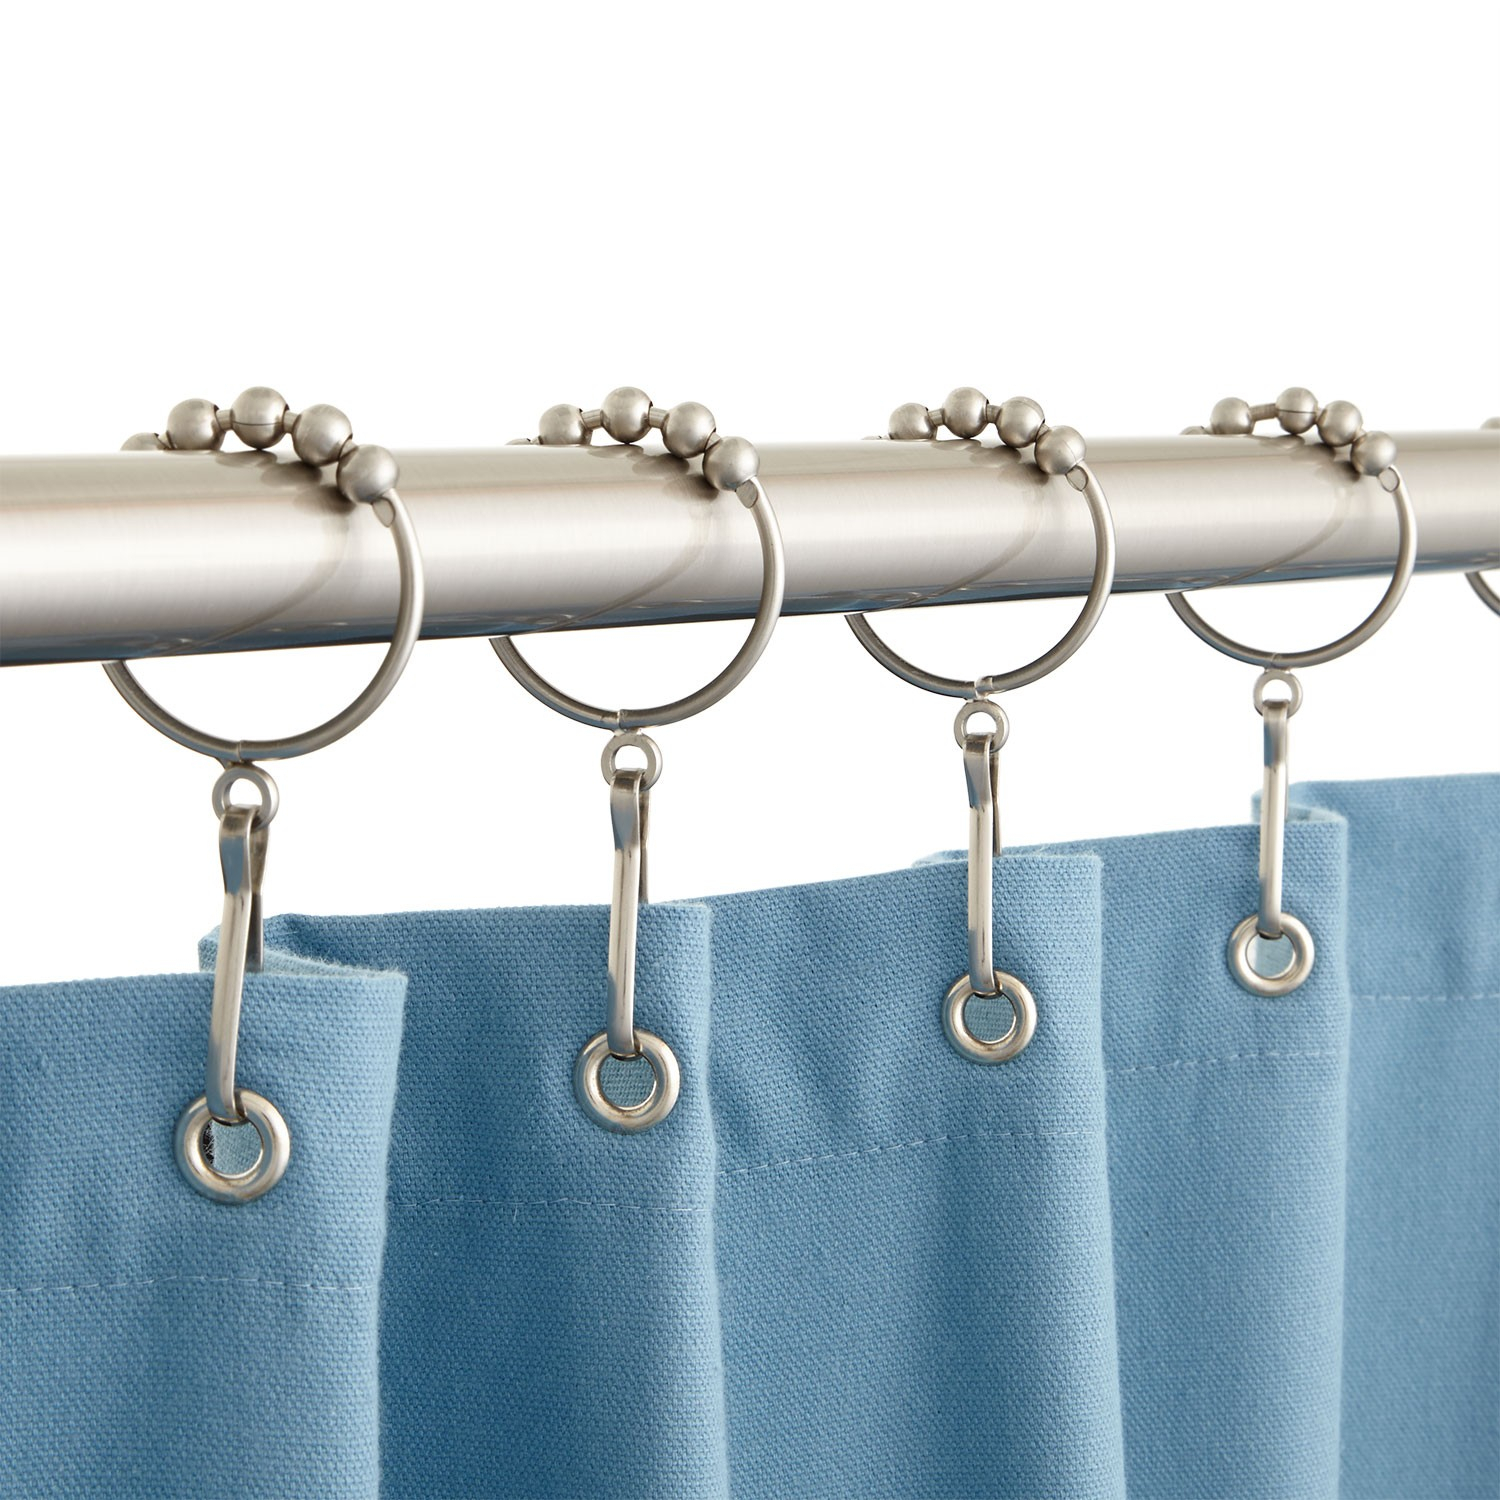 Large Oversized Heavy Duty Shower Curtain Rings • Shower Curtains ...